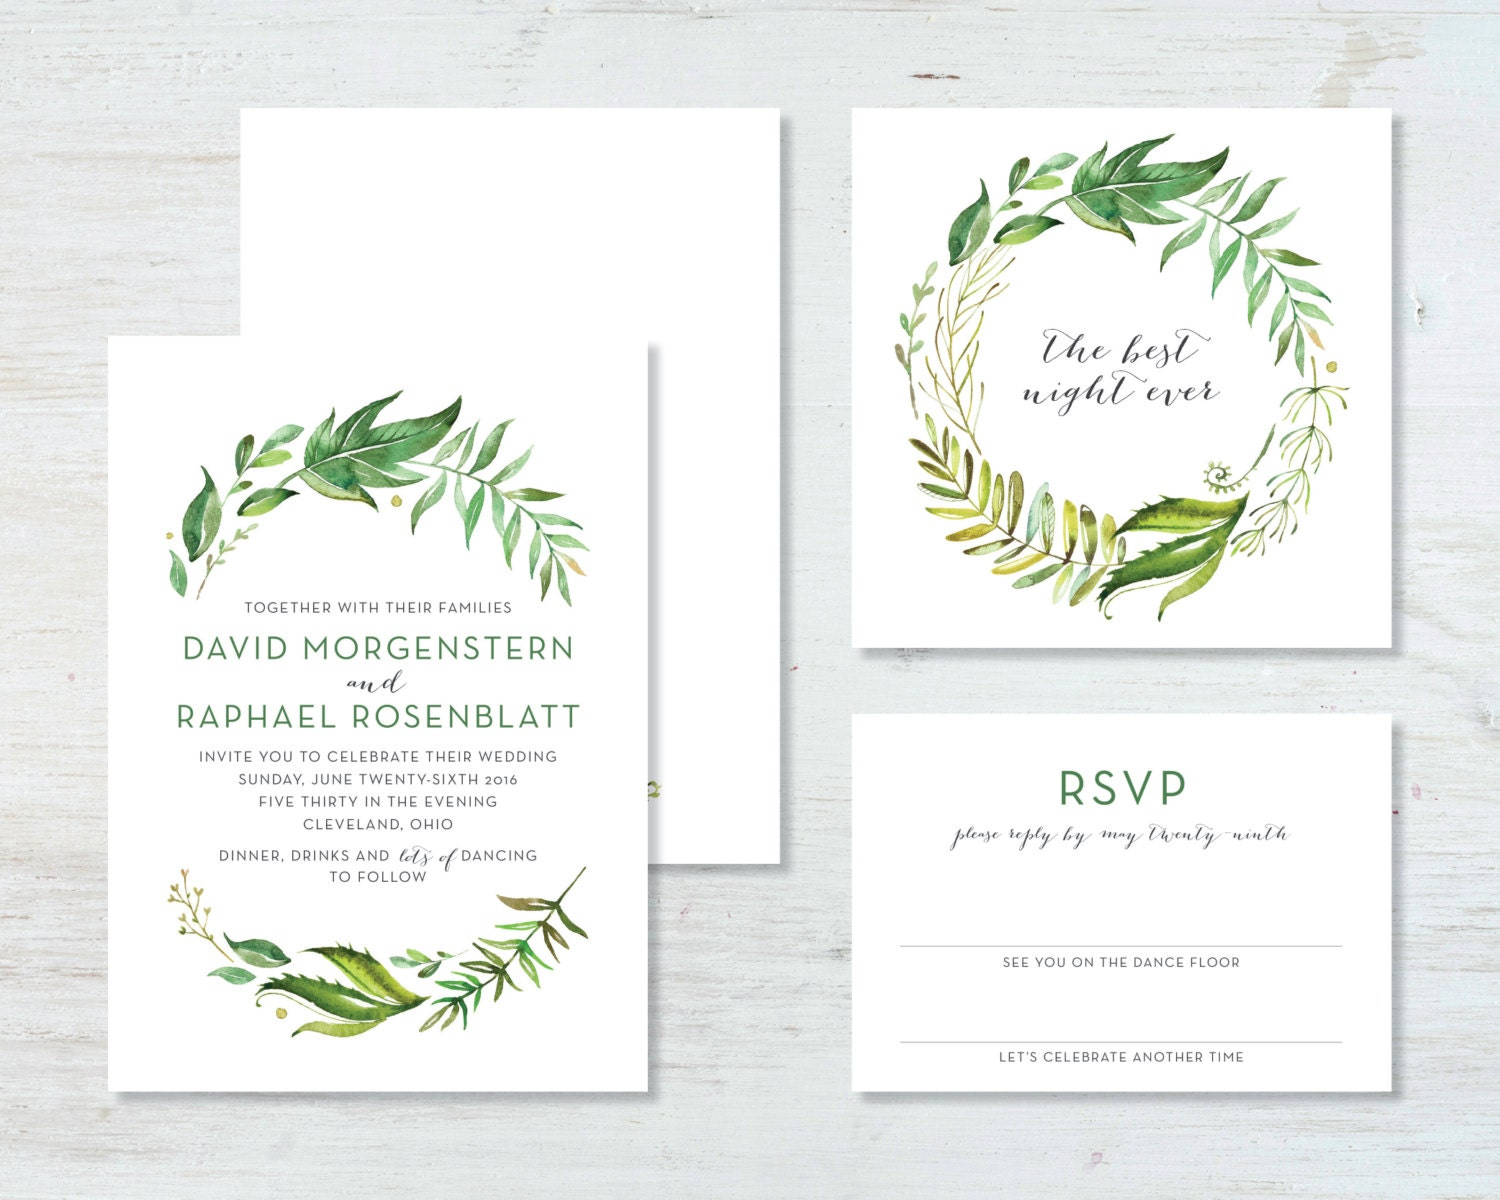 Greenery wedding invitation suite deposit zoom monicamarmolfo Image collections